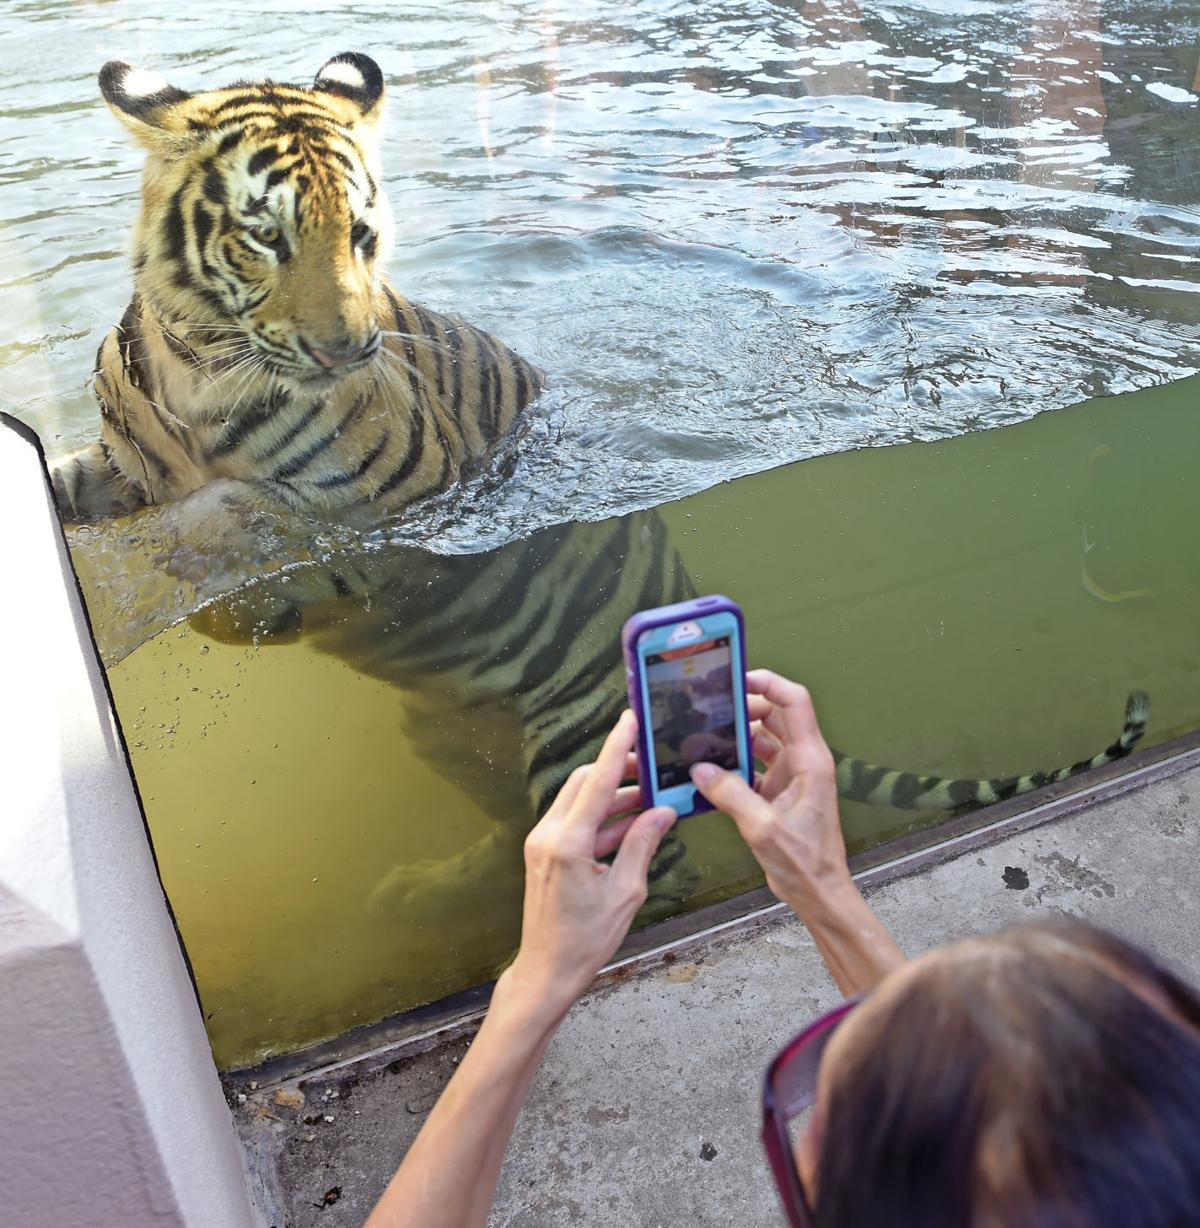 Lsu Do Mike Vii A Favor Don T Bring Pets Stuffed Animals When You